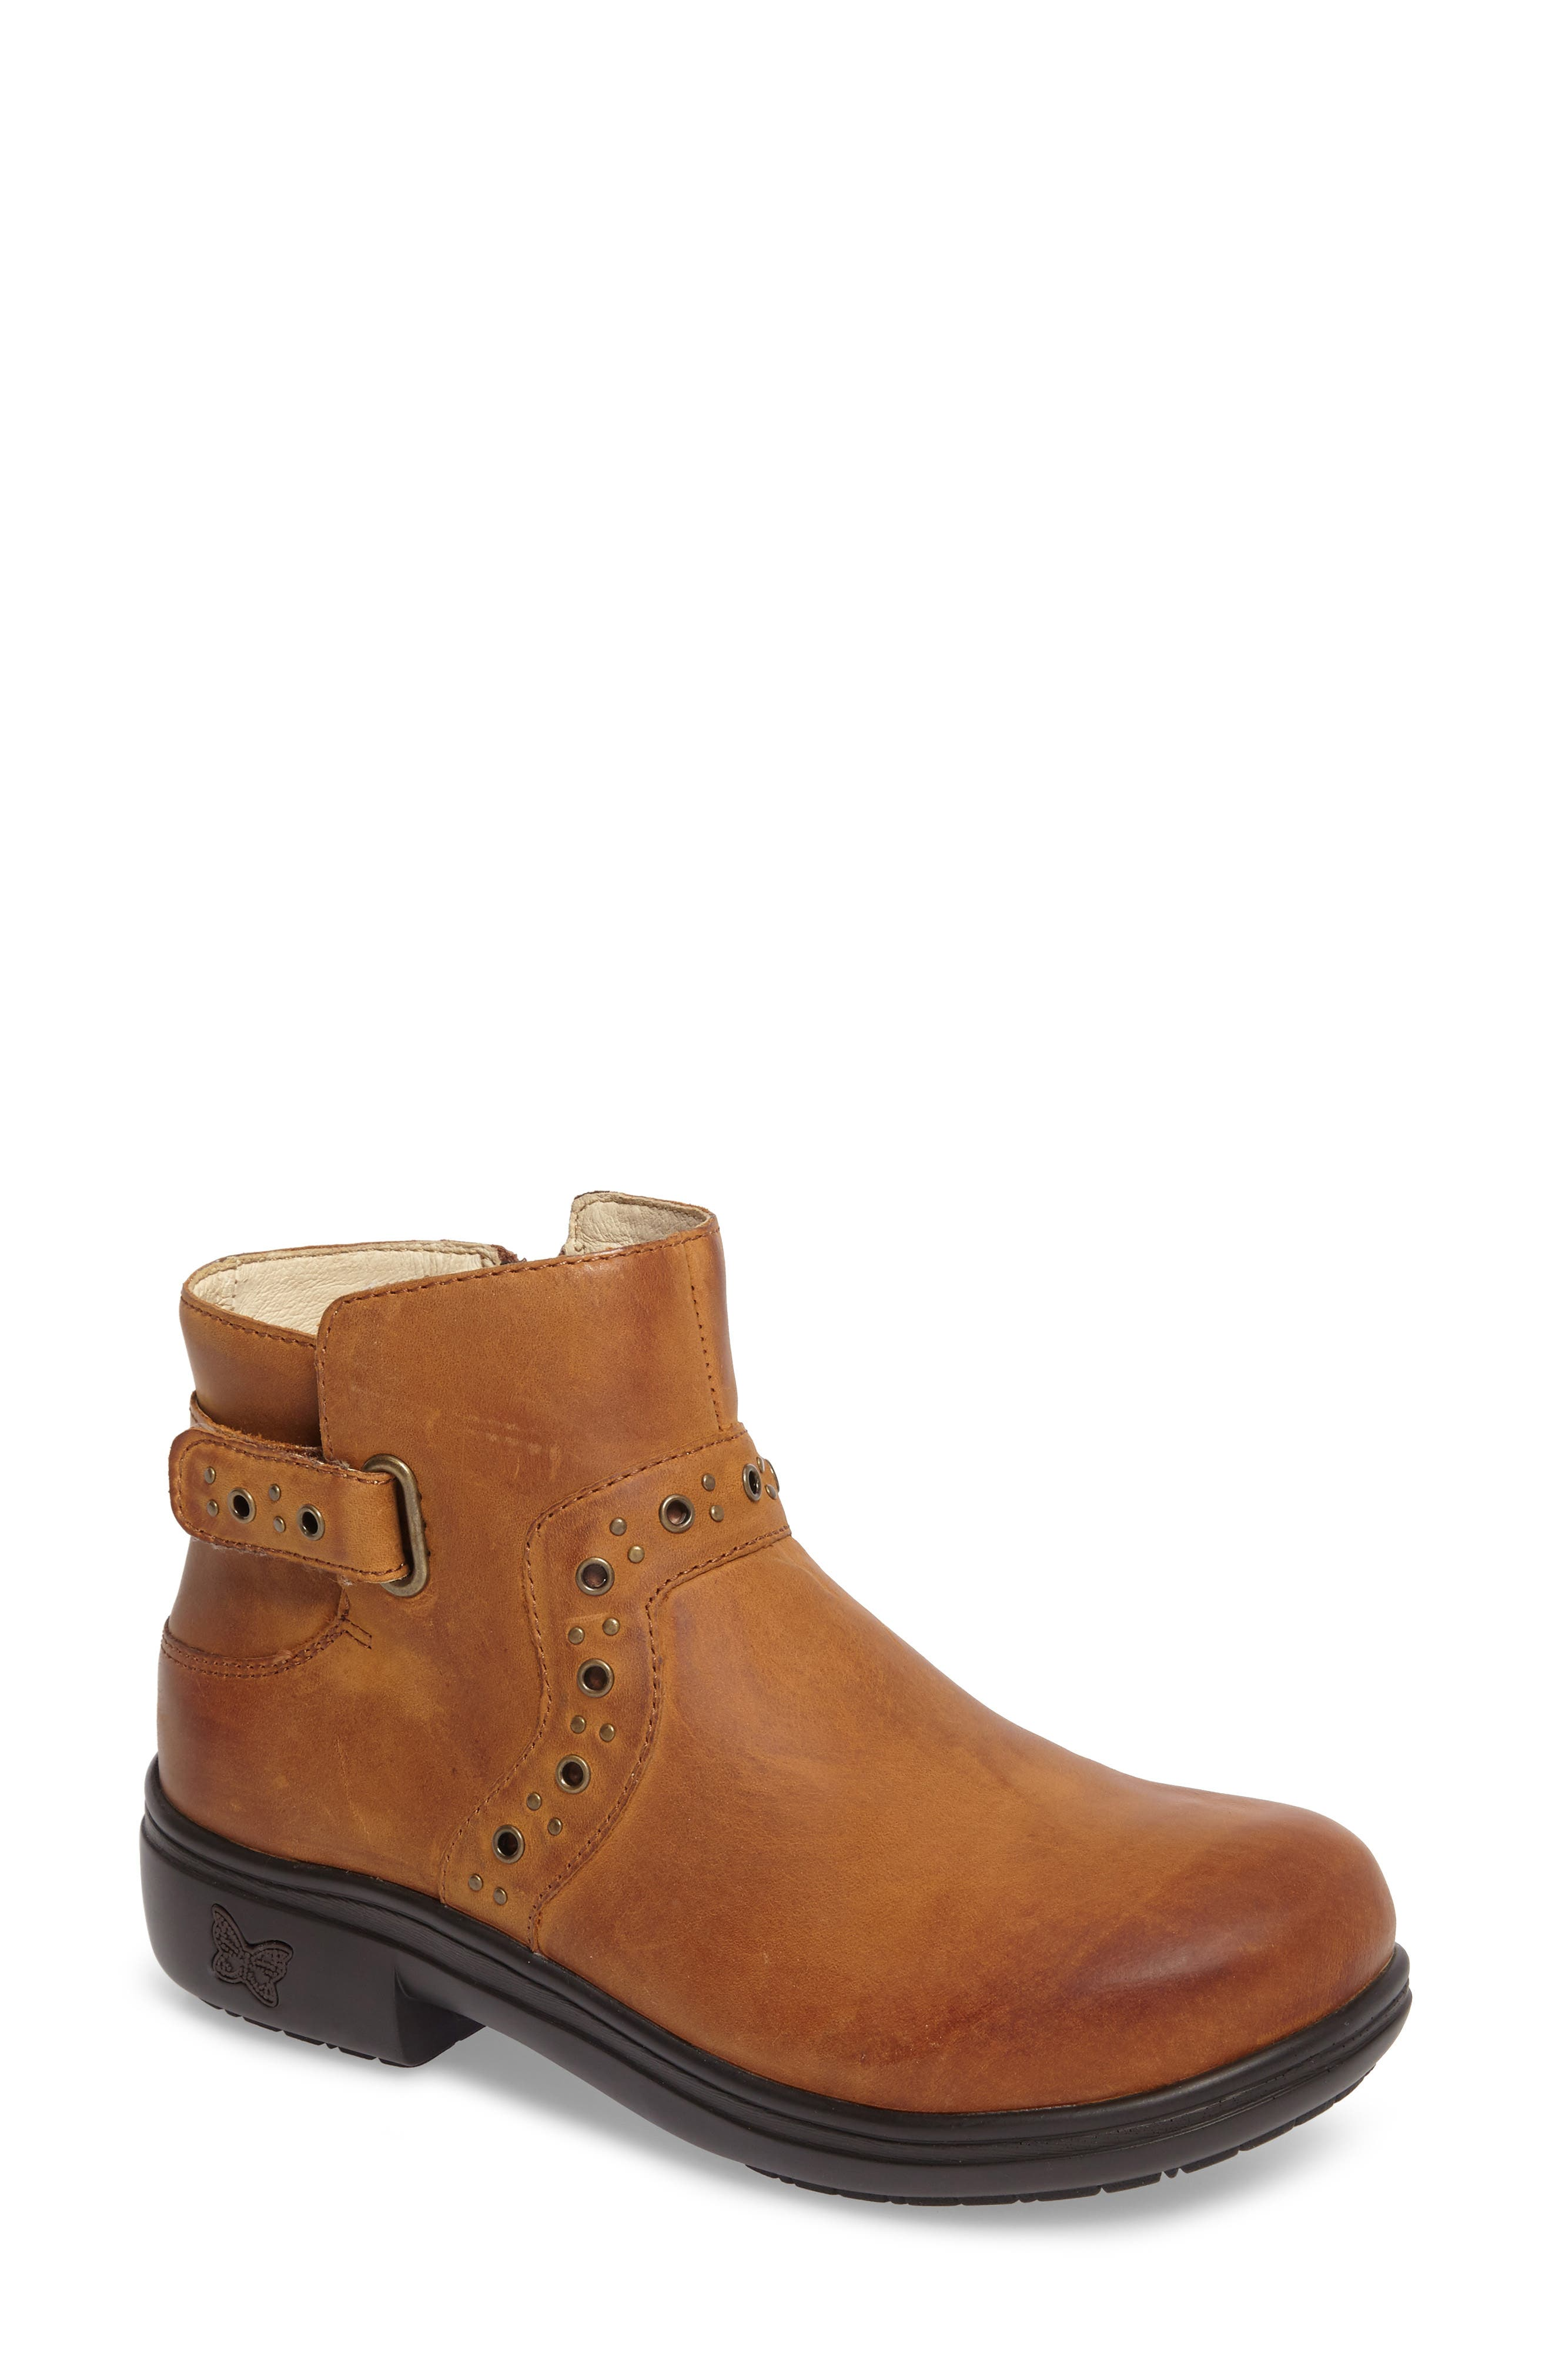 Zoey Ankle Boot,                         Main,                         color, Walnut Leather